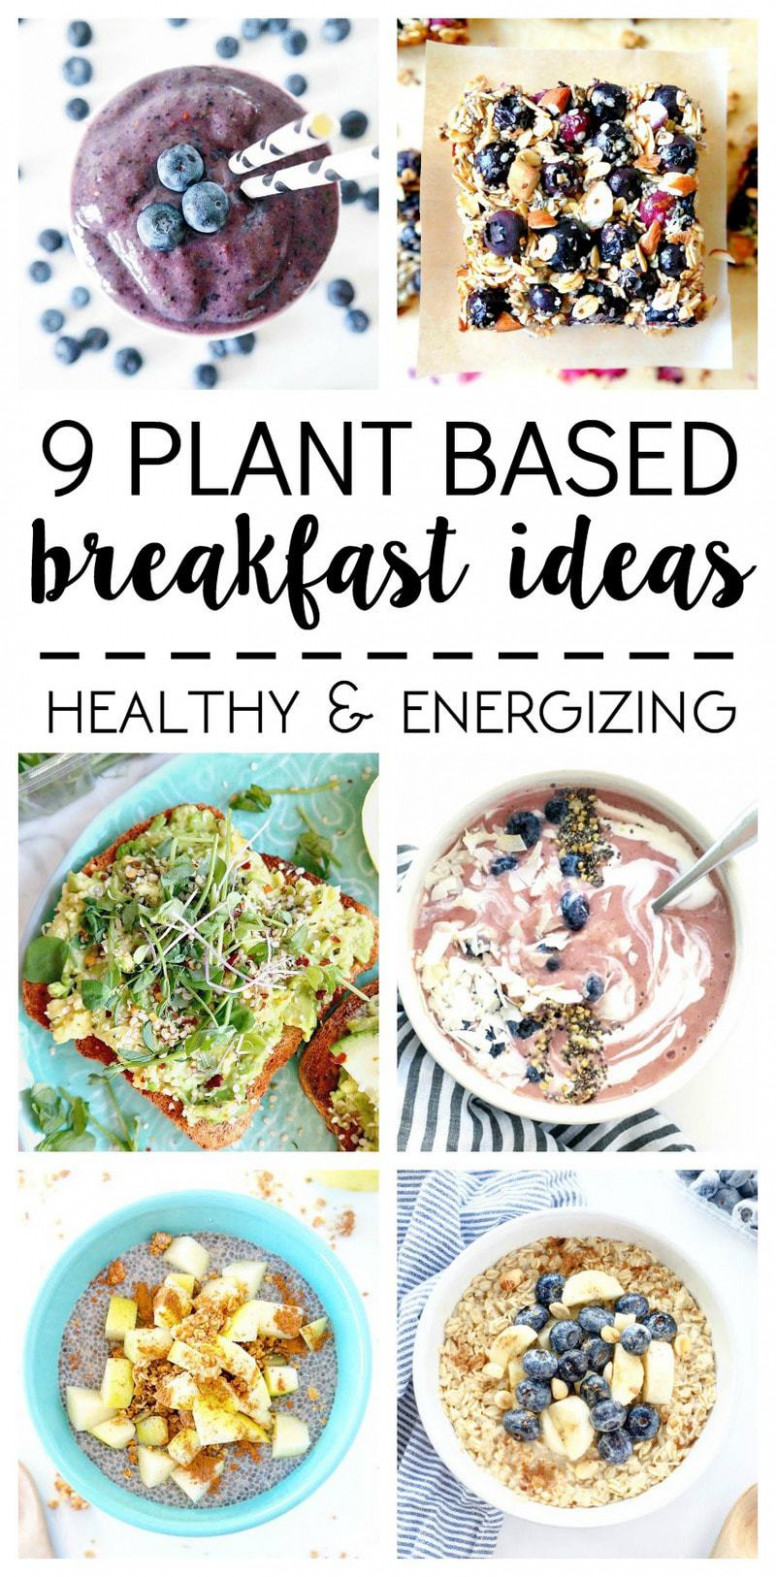 What I Ate: 10 Plant Based Breakfast Ideas » The Glowing Fridge - Healthy Recipes Plant Based